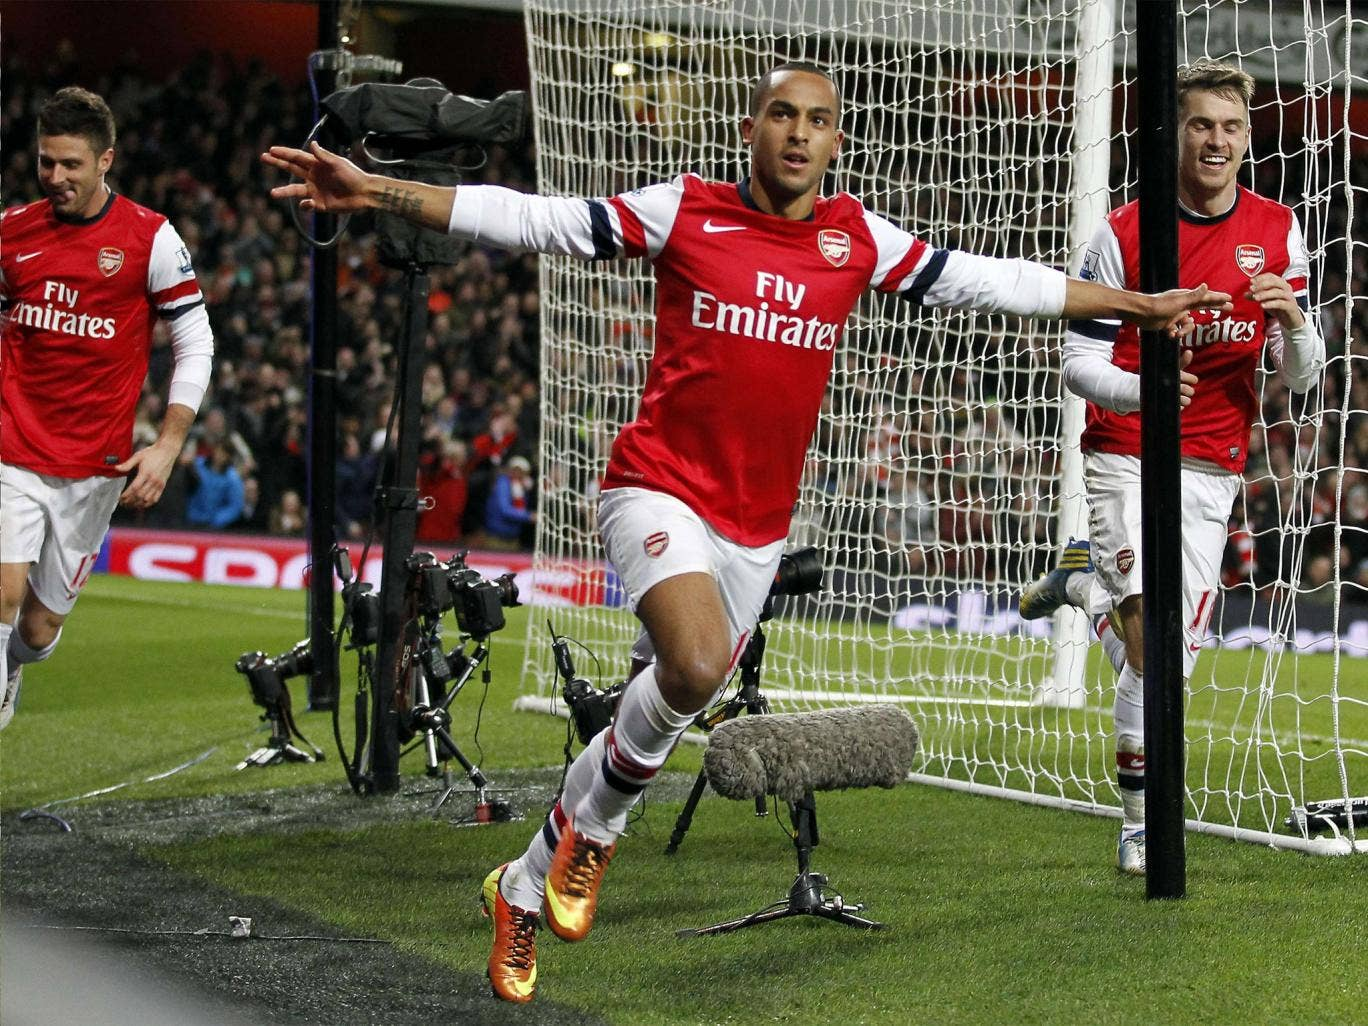 Walcott's strike saved Arsenal's blushes